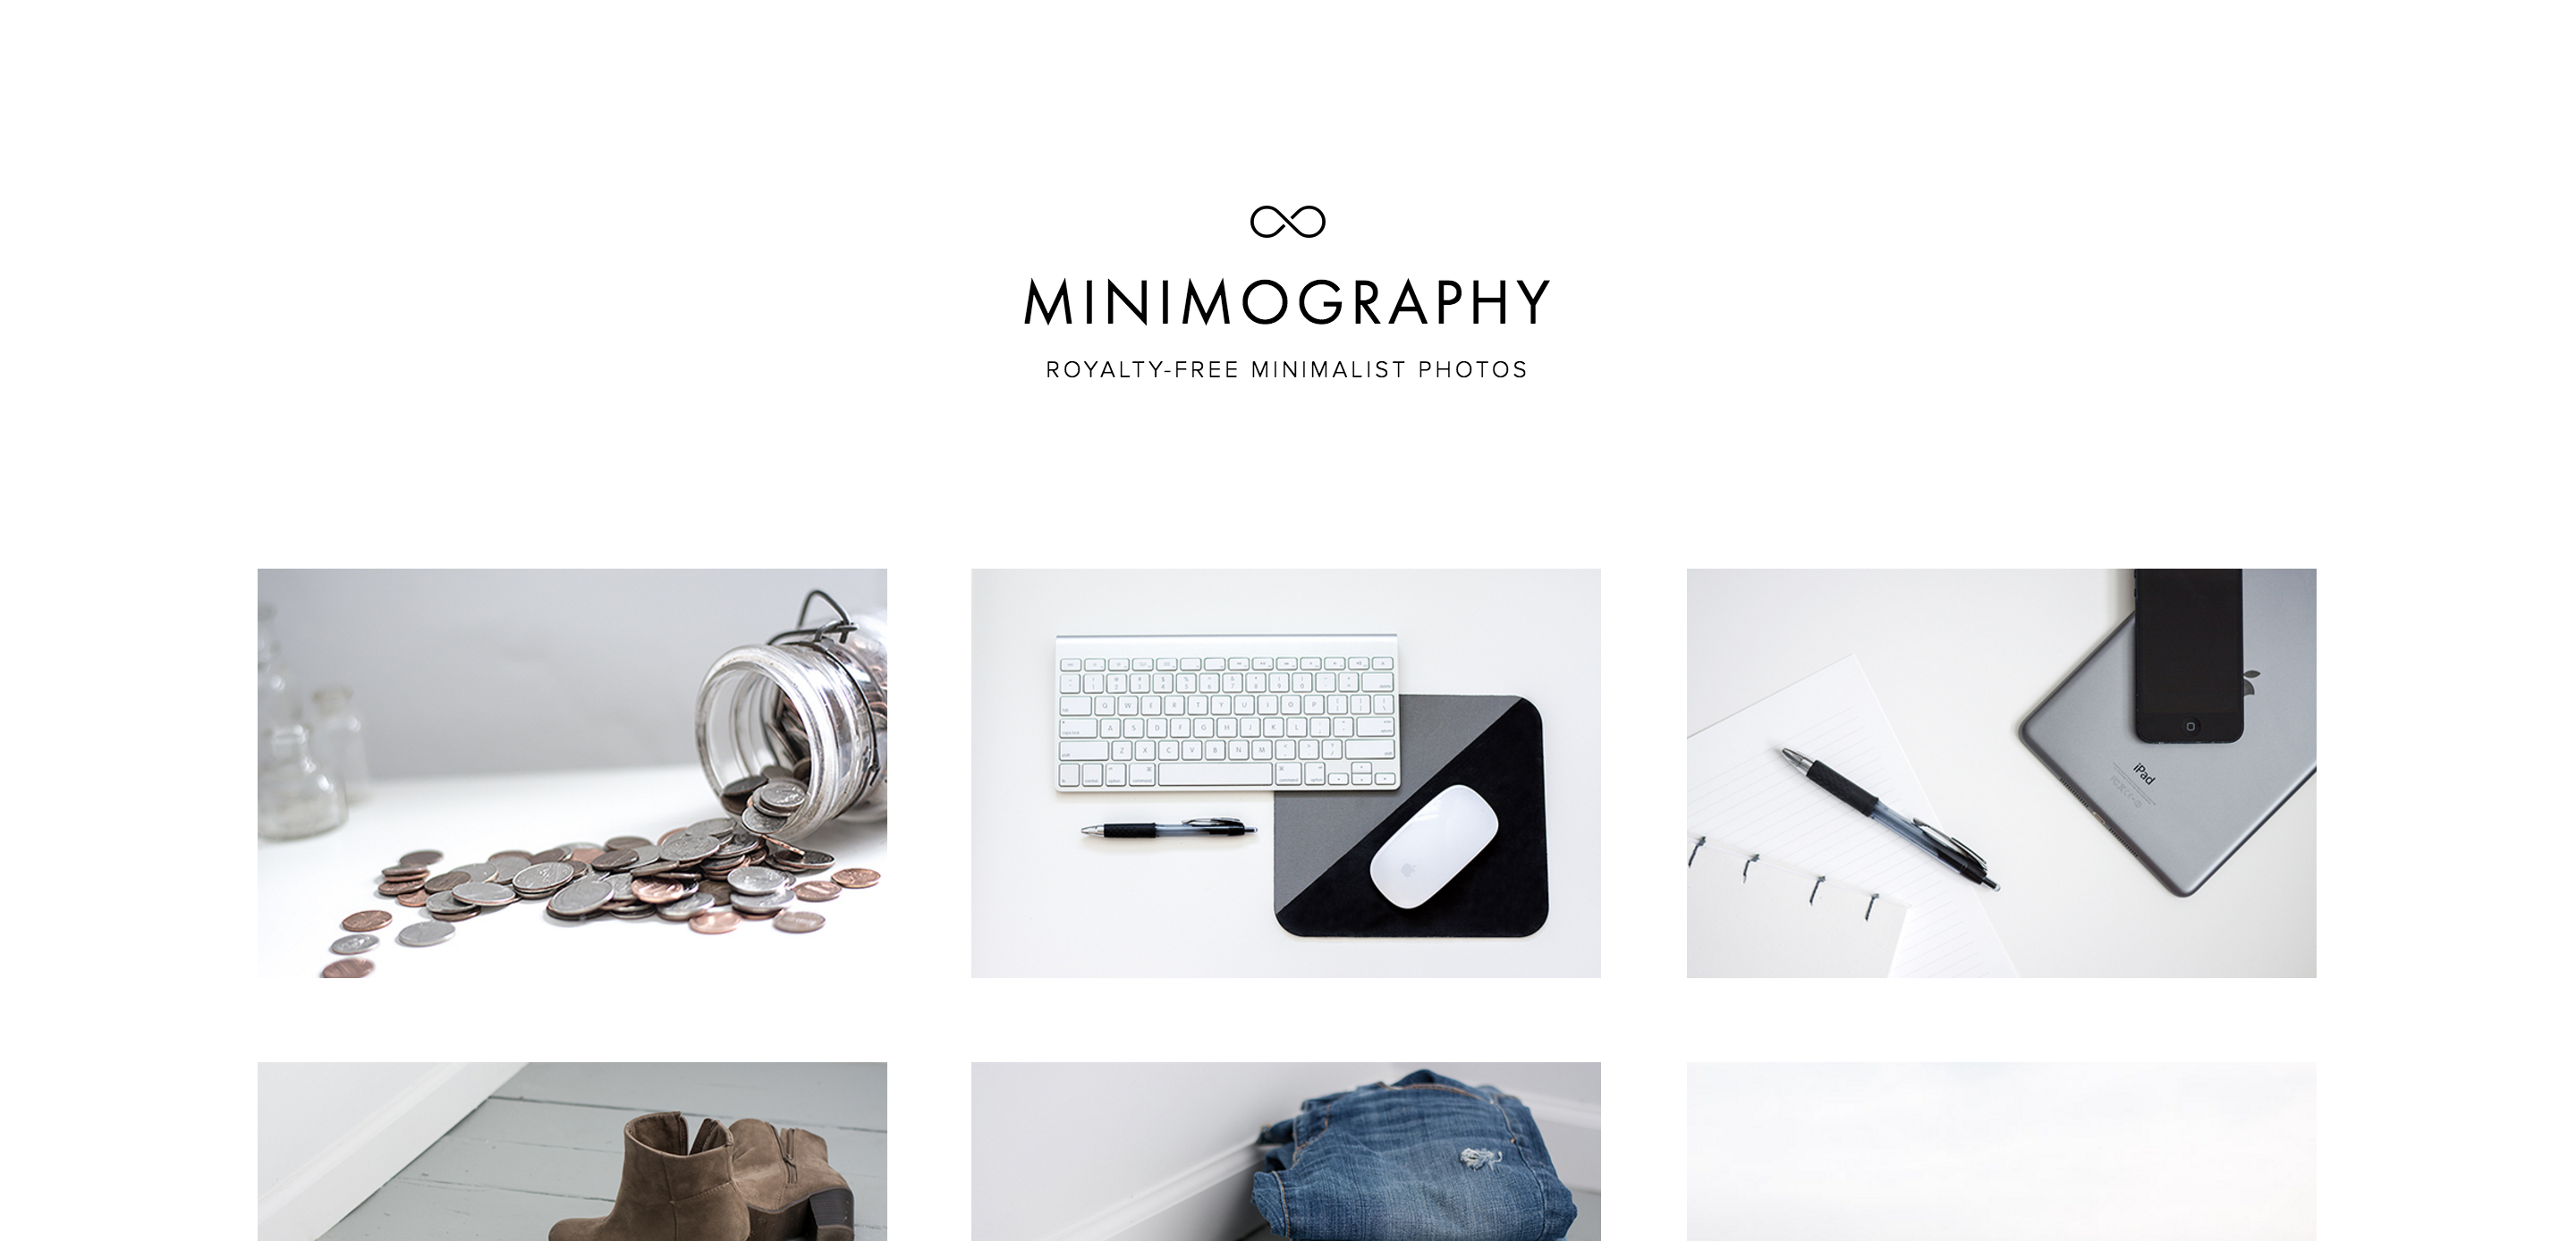 Minimography Free Stock Photo Site